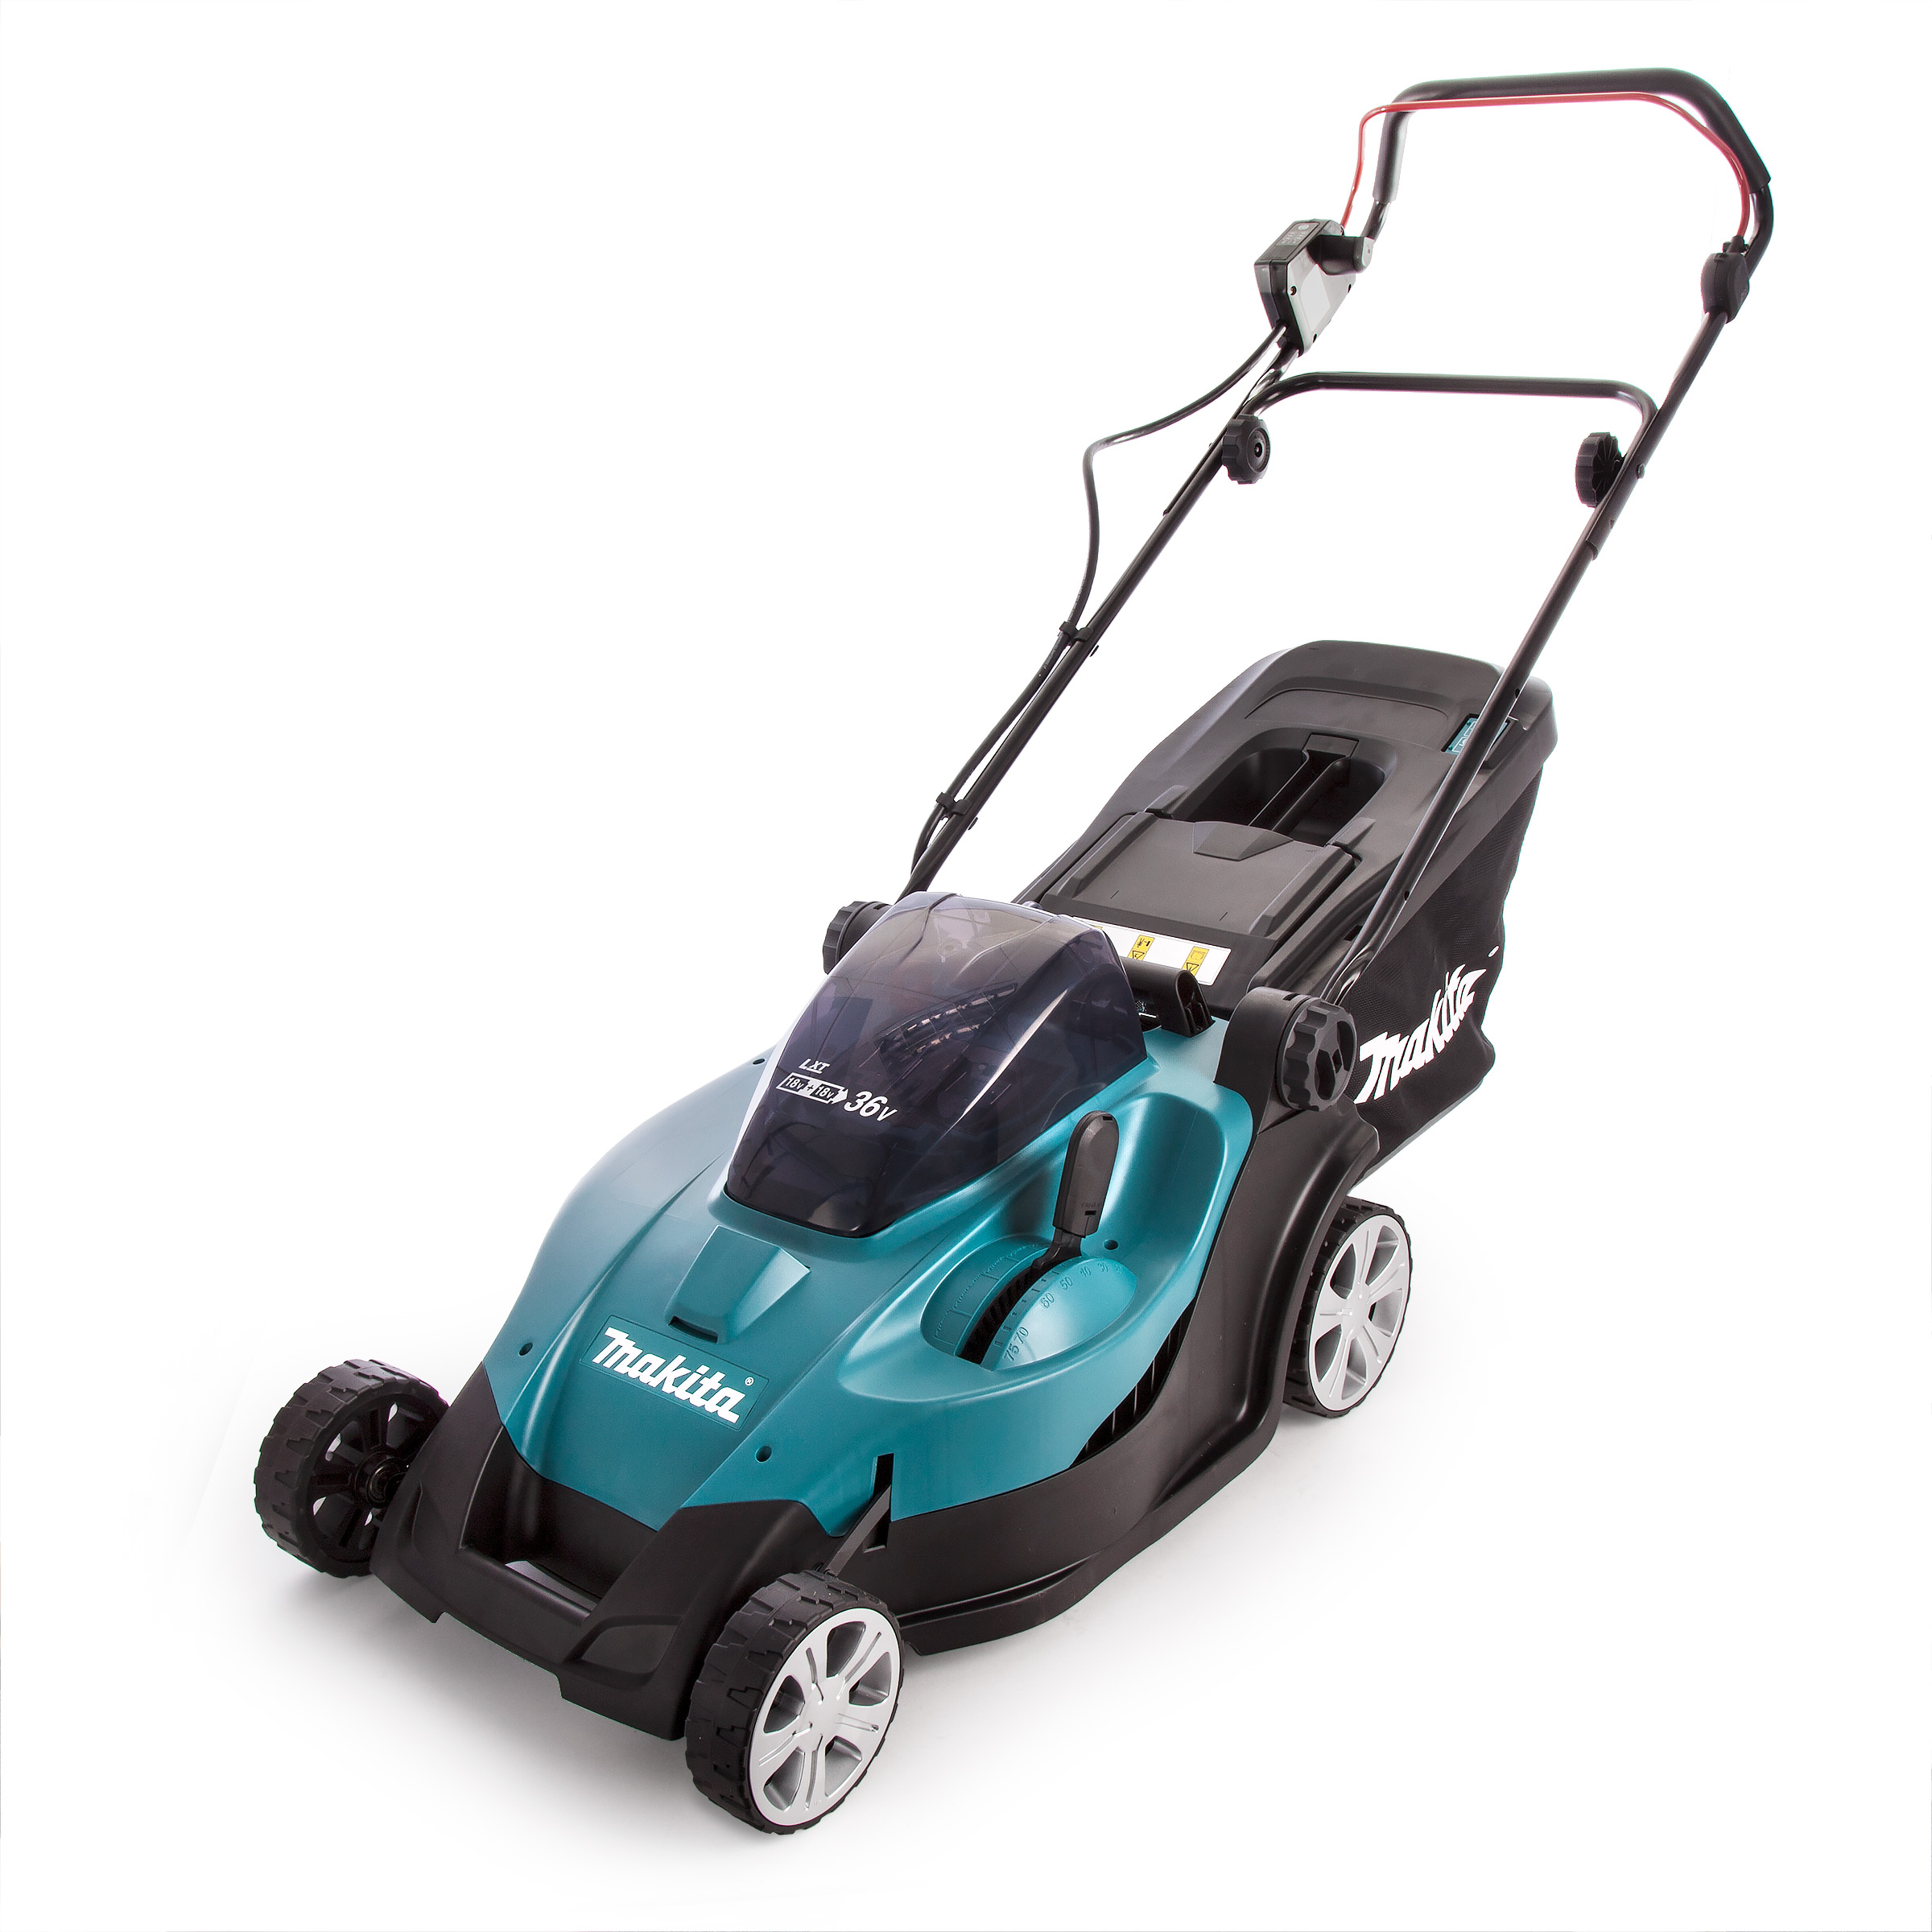 MAKITA TWIN 18V 43CM LAWNMOWER - DLM431Z - BODY ONLY